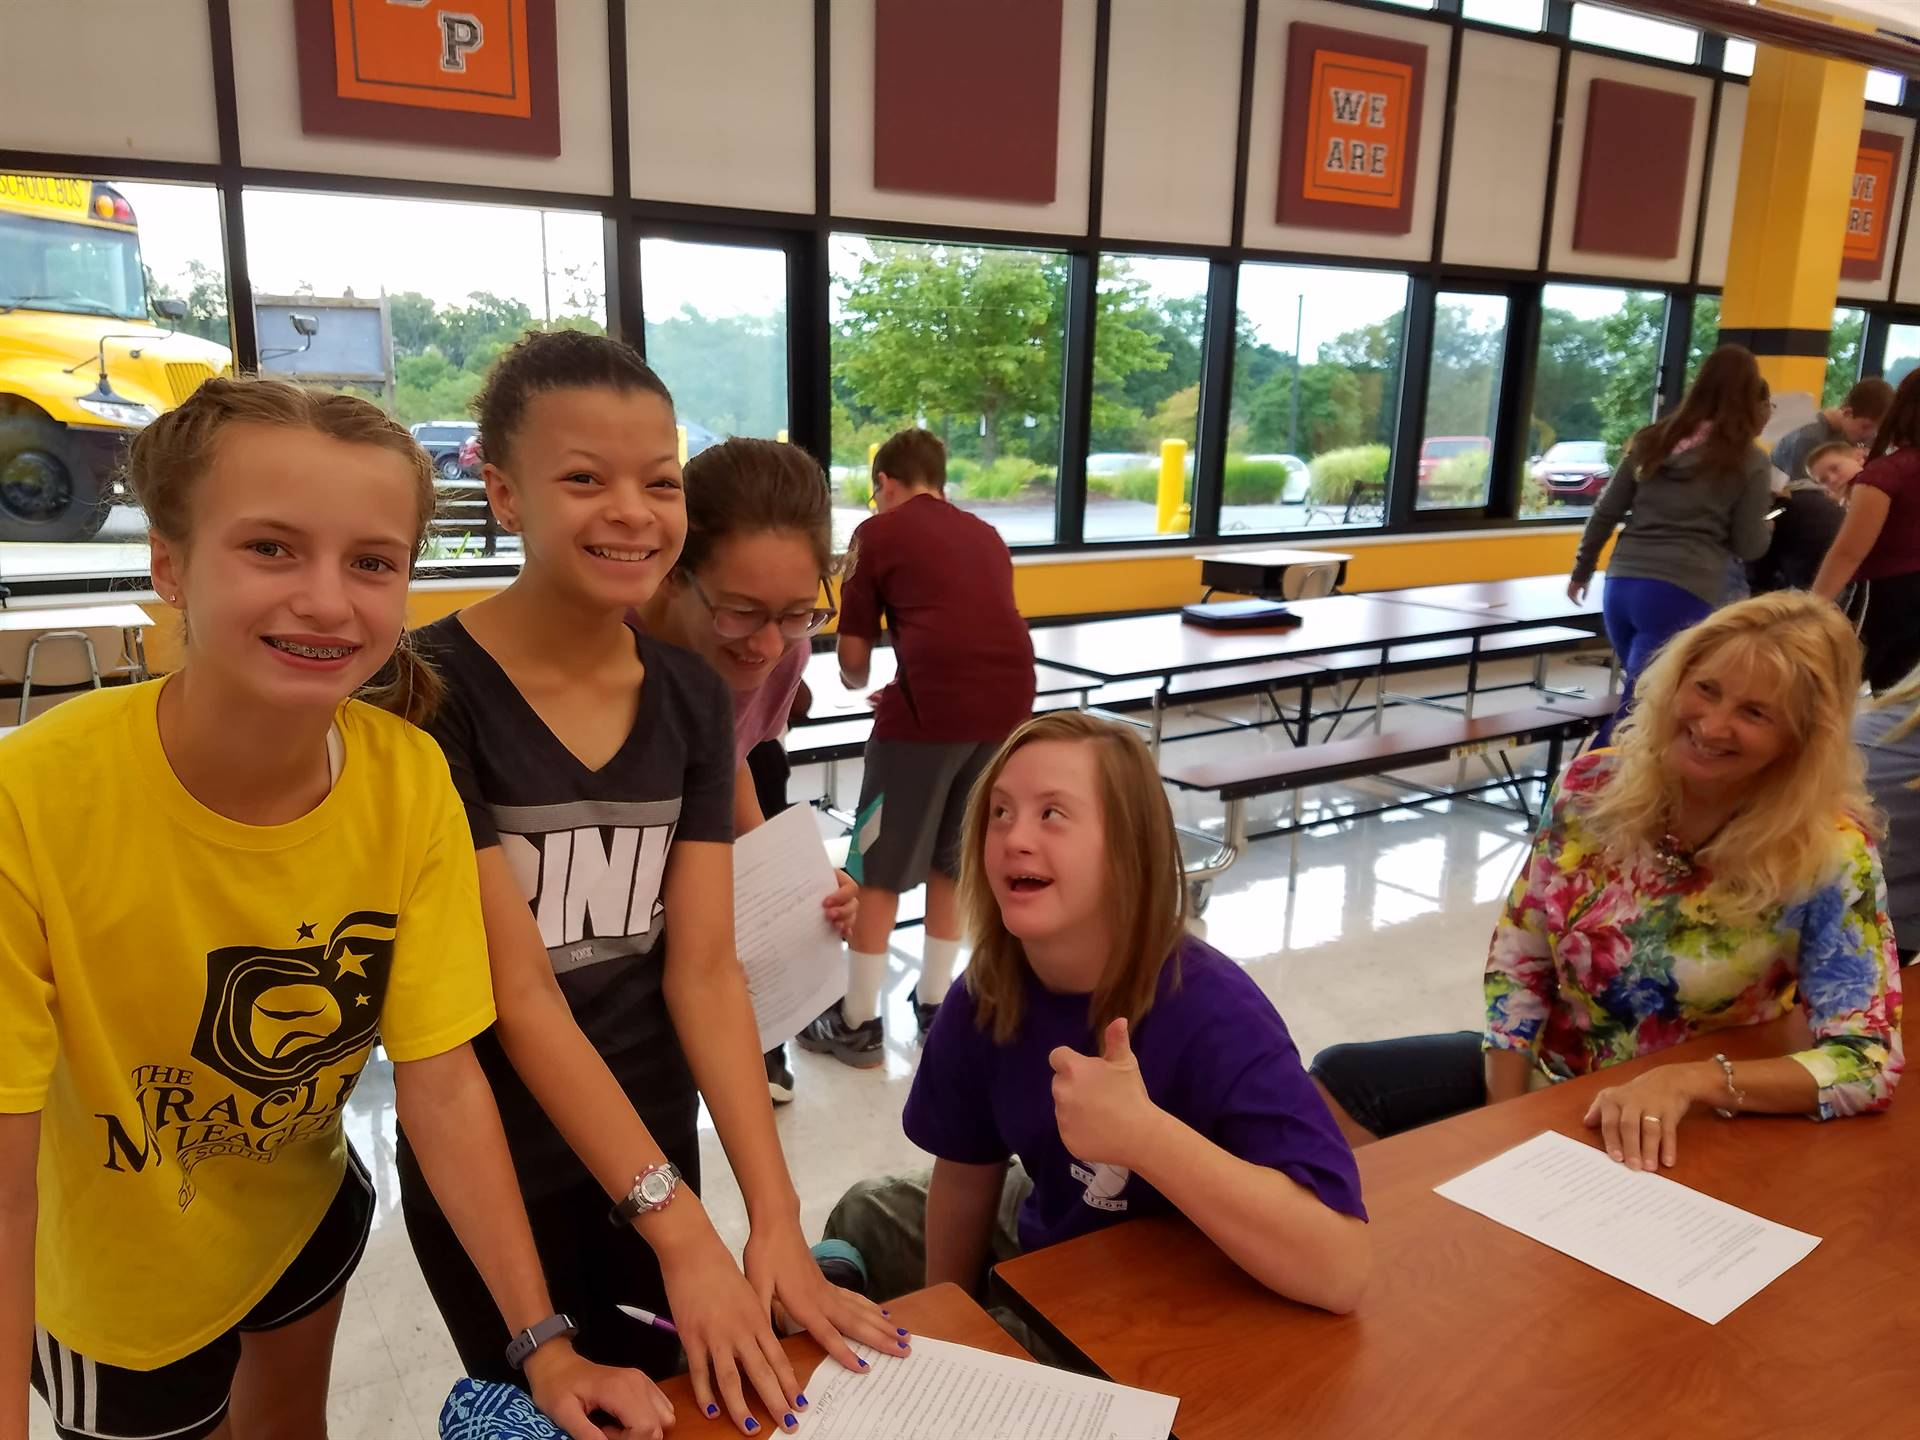 Students were all smiles on their first team day.